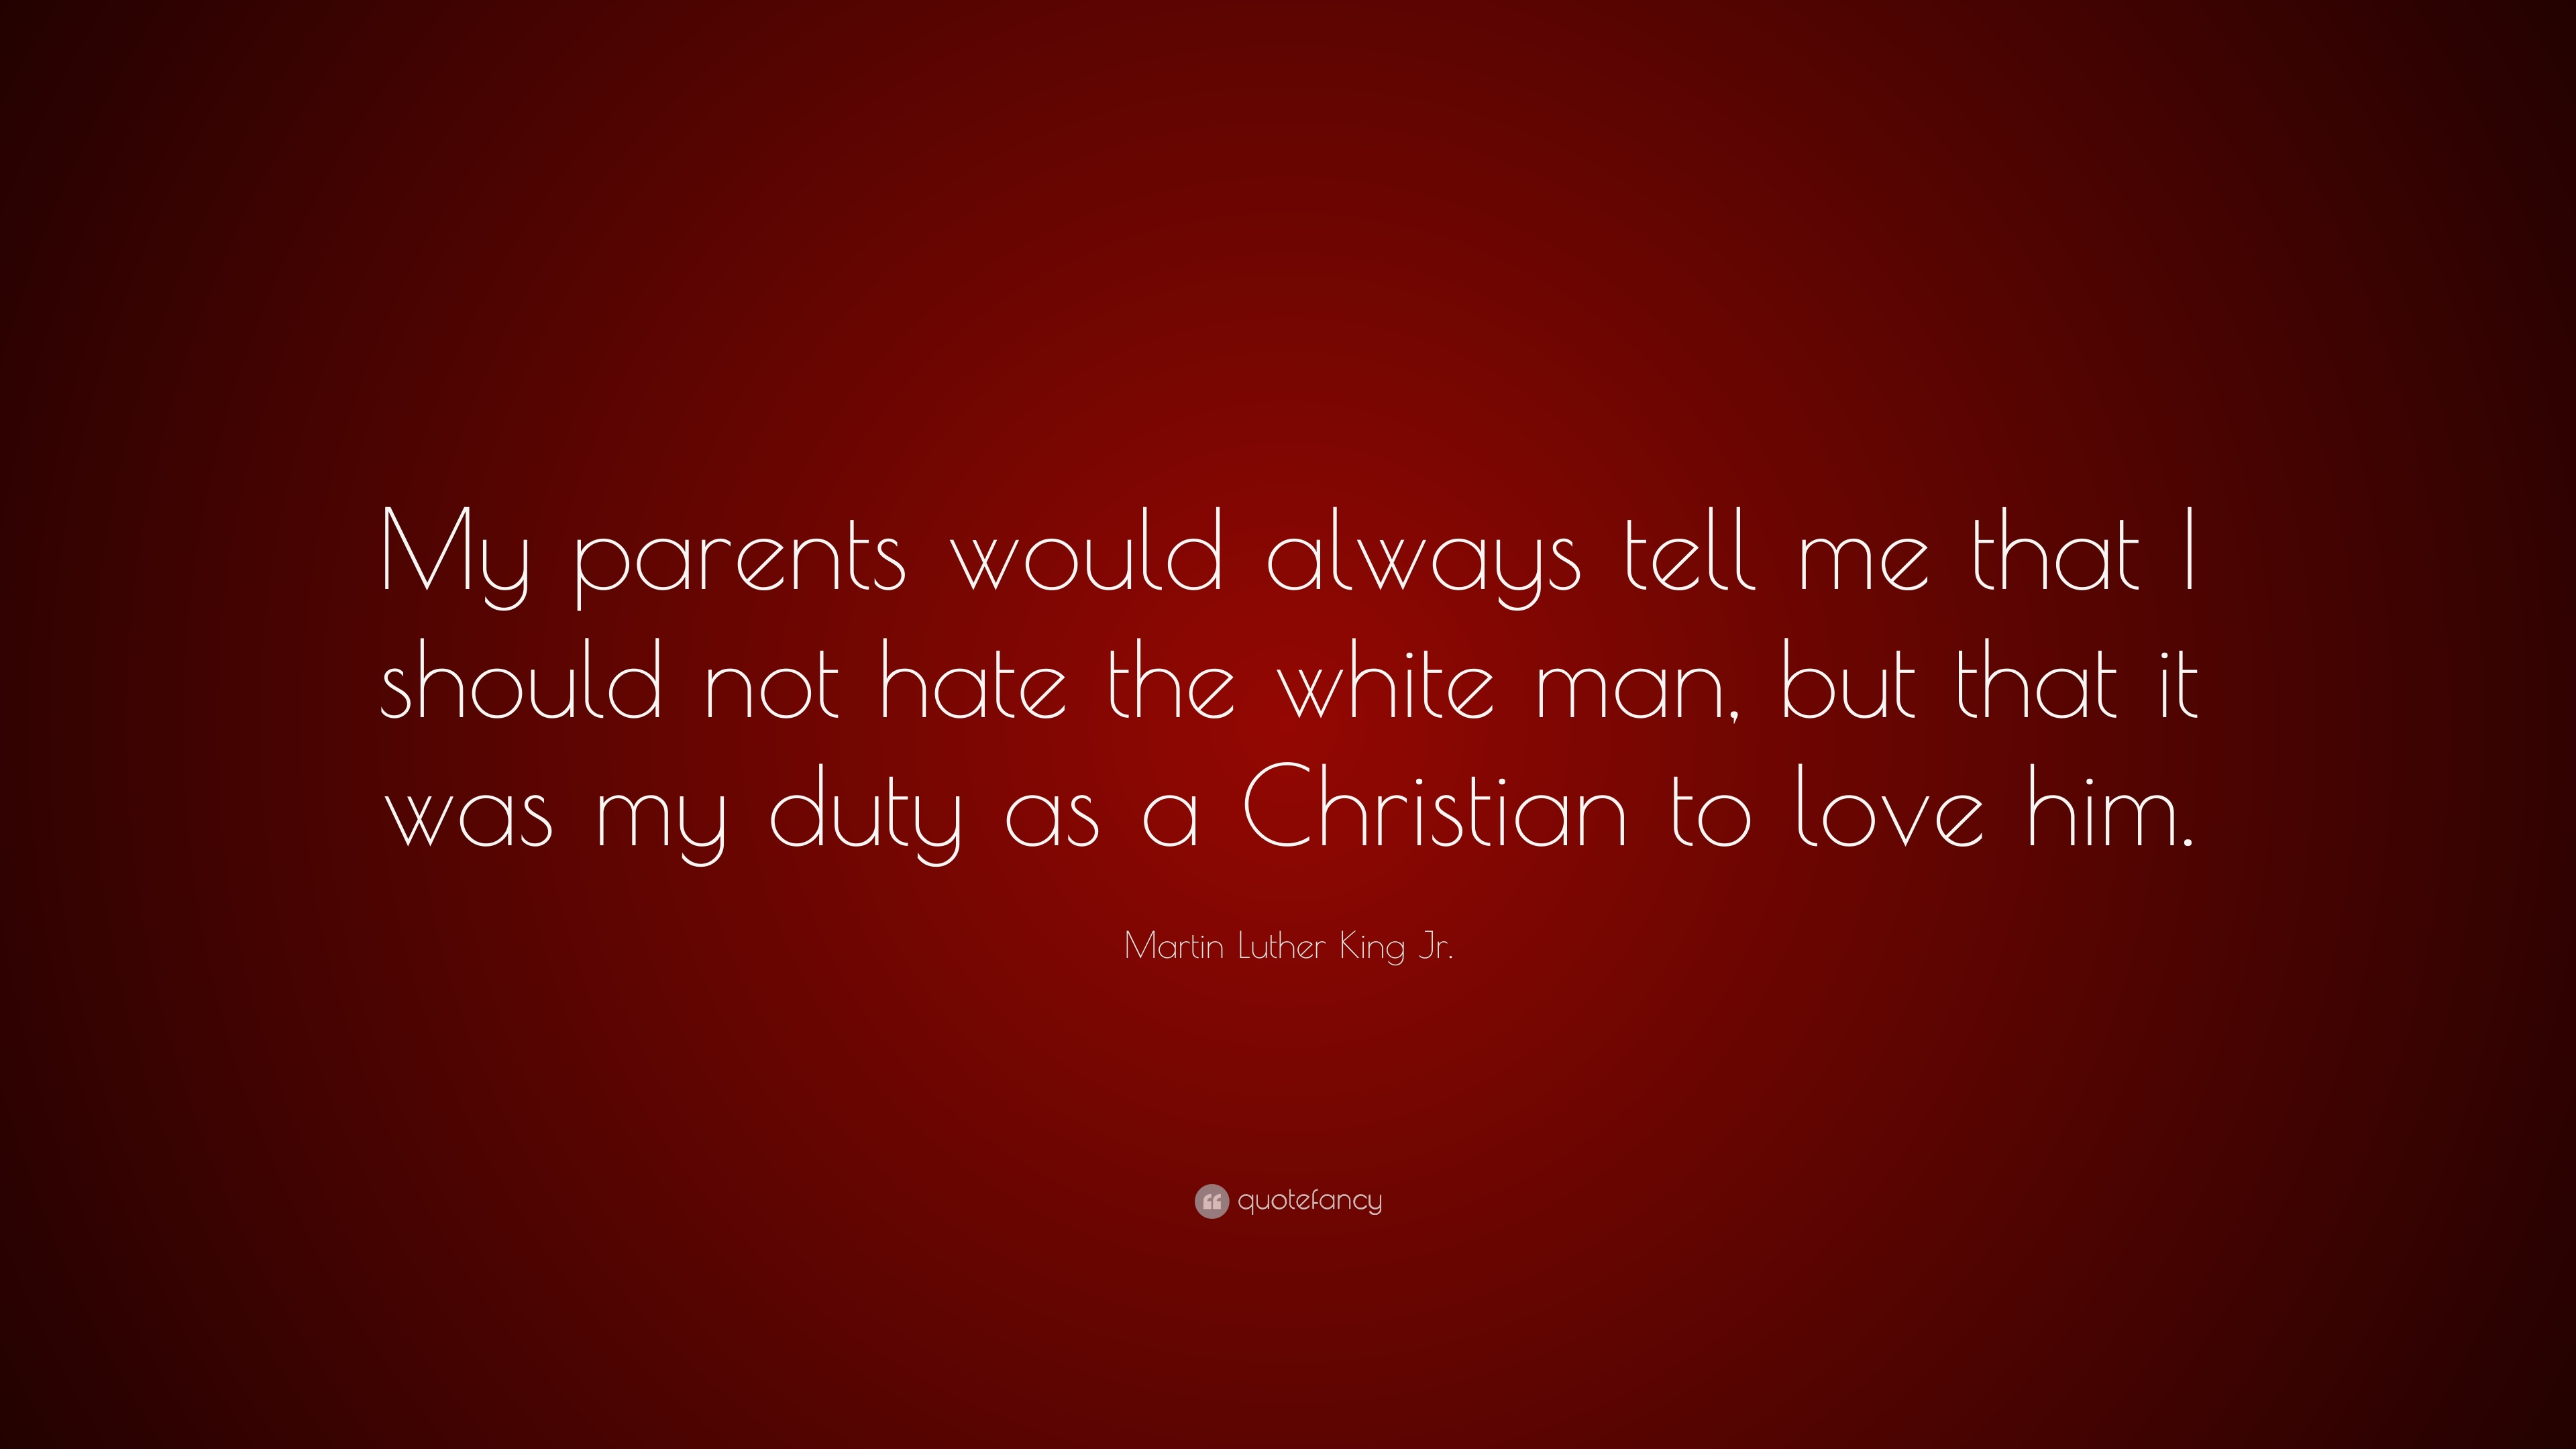 Christian dating guy family hates me